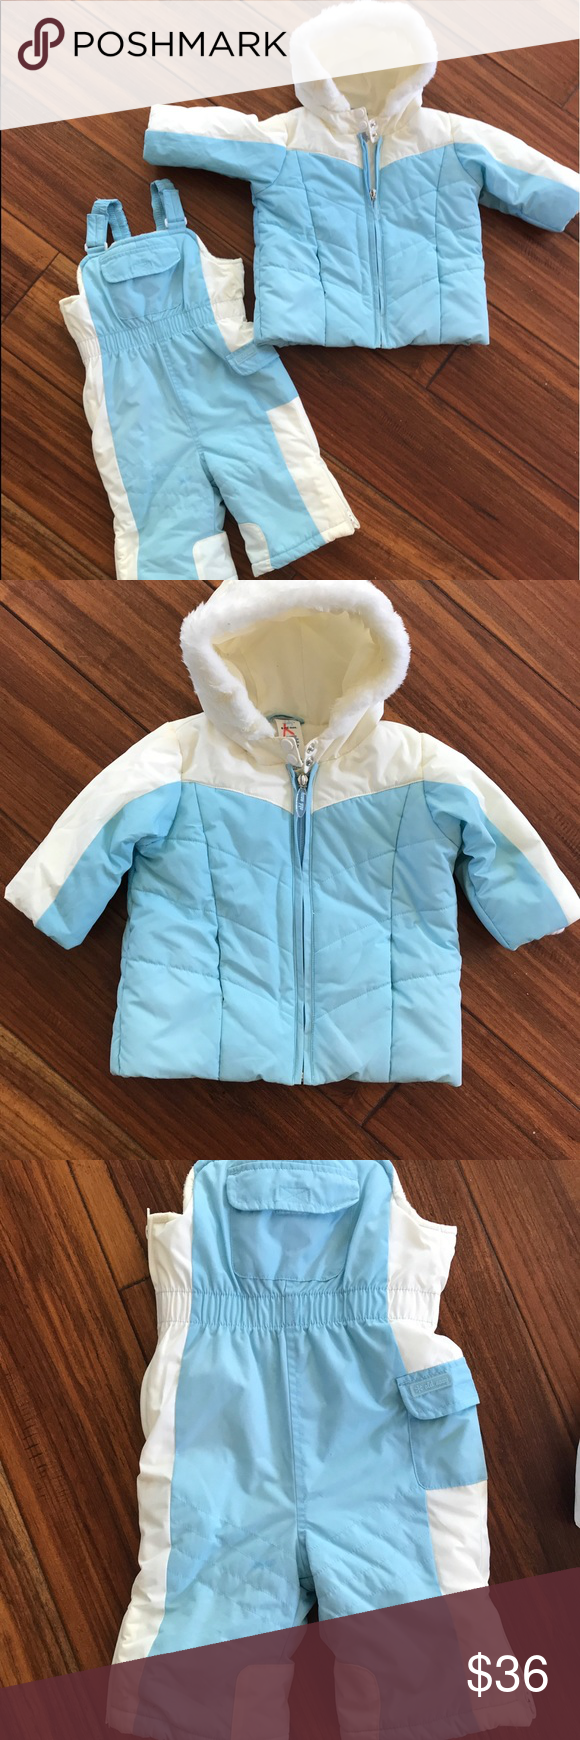 c160bbcac36e Old Navy Kid s Snow Suit 6-12 months